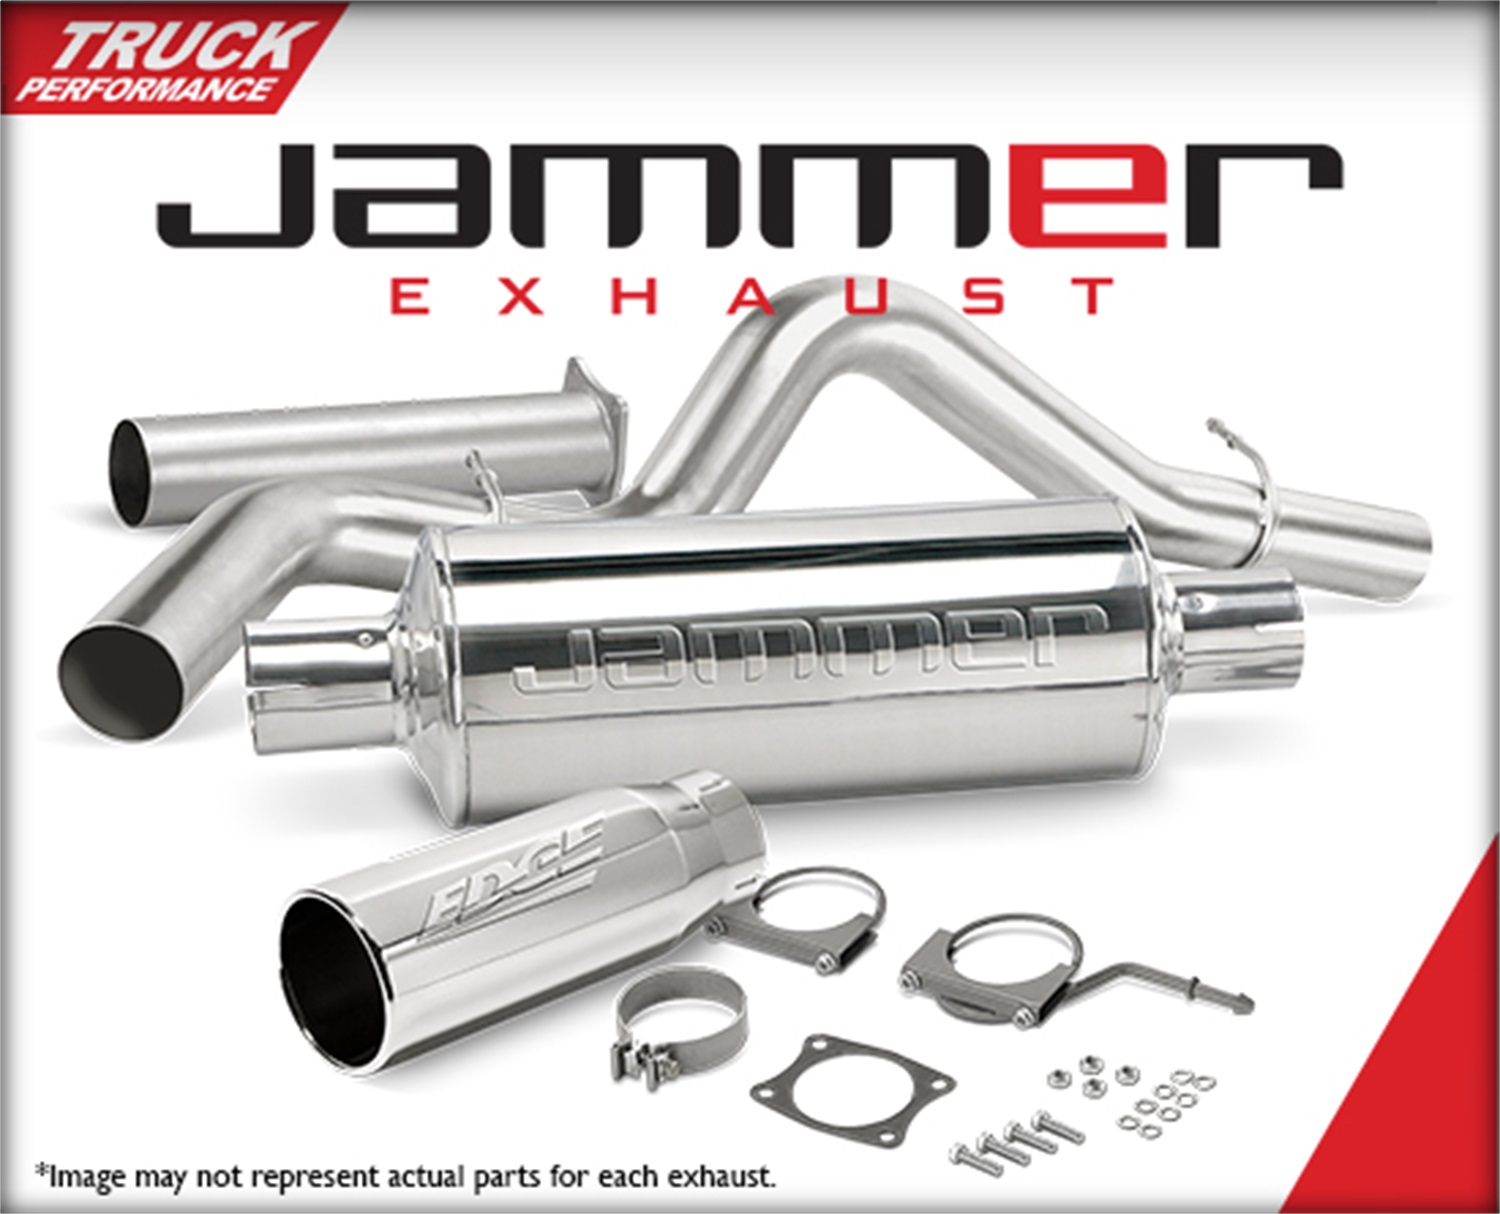 DPF-Back Jammer Exhaust, 4 in. Pipe, 5 in. Polished Chrome Tip, Stainless Steel